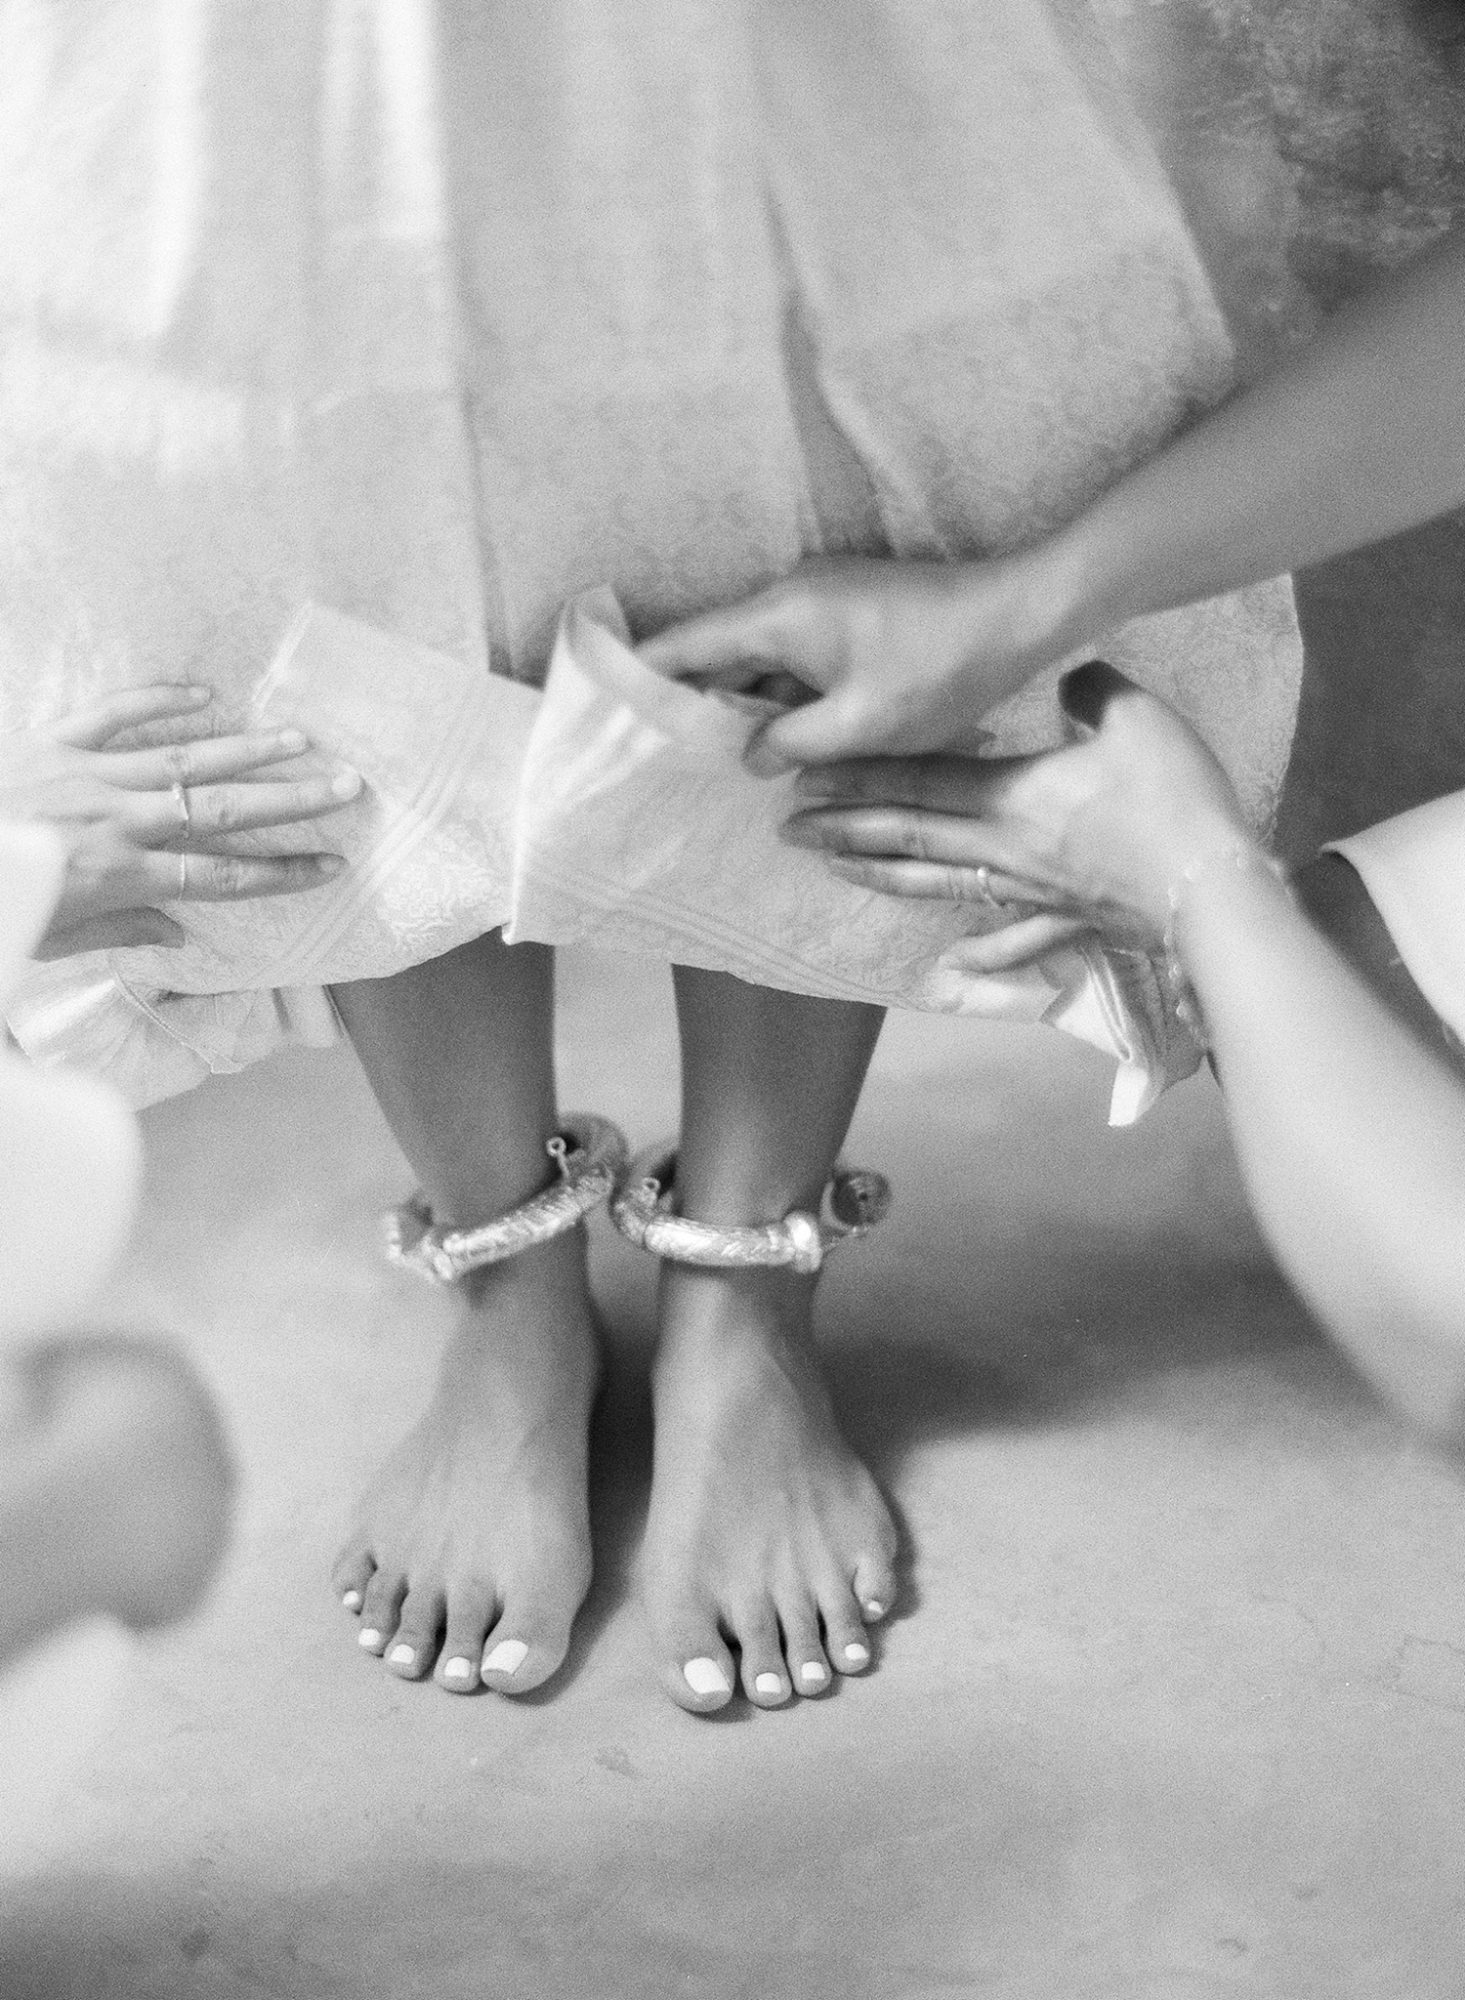 sophie ankle-bangles black and white photo